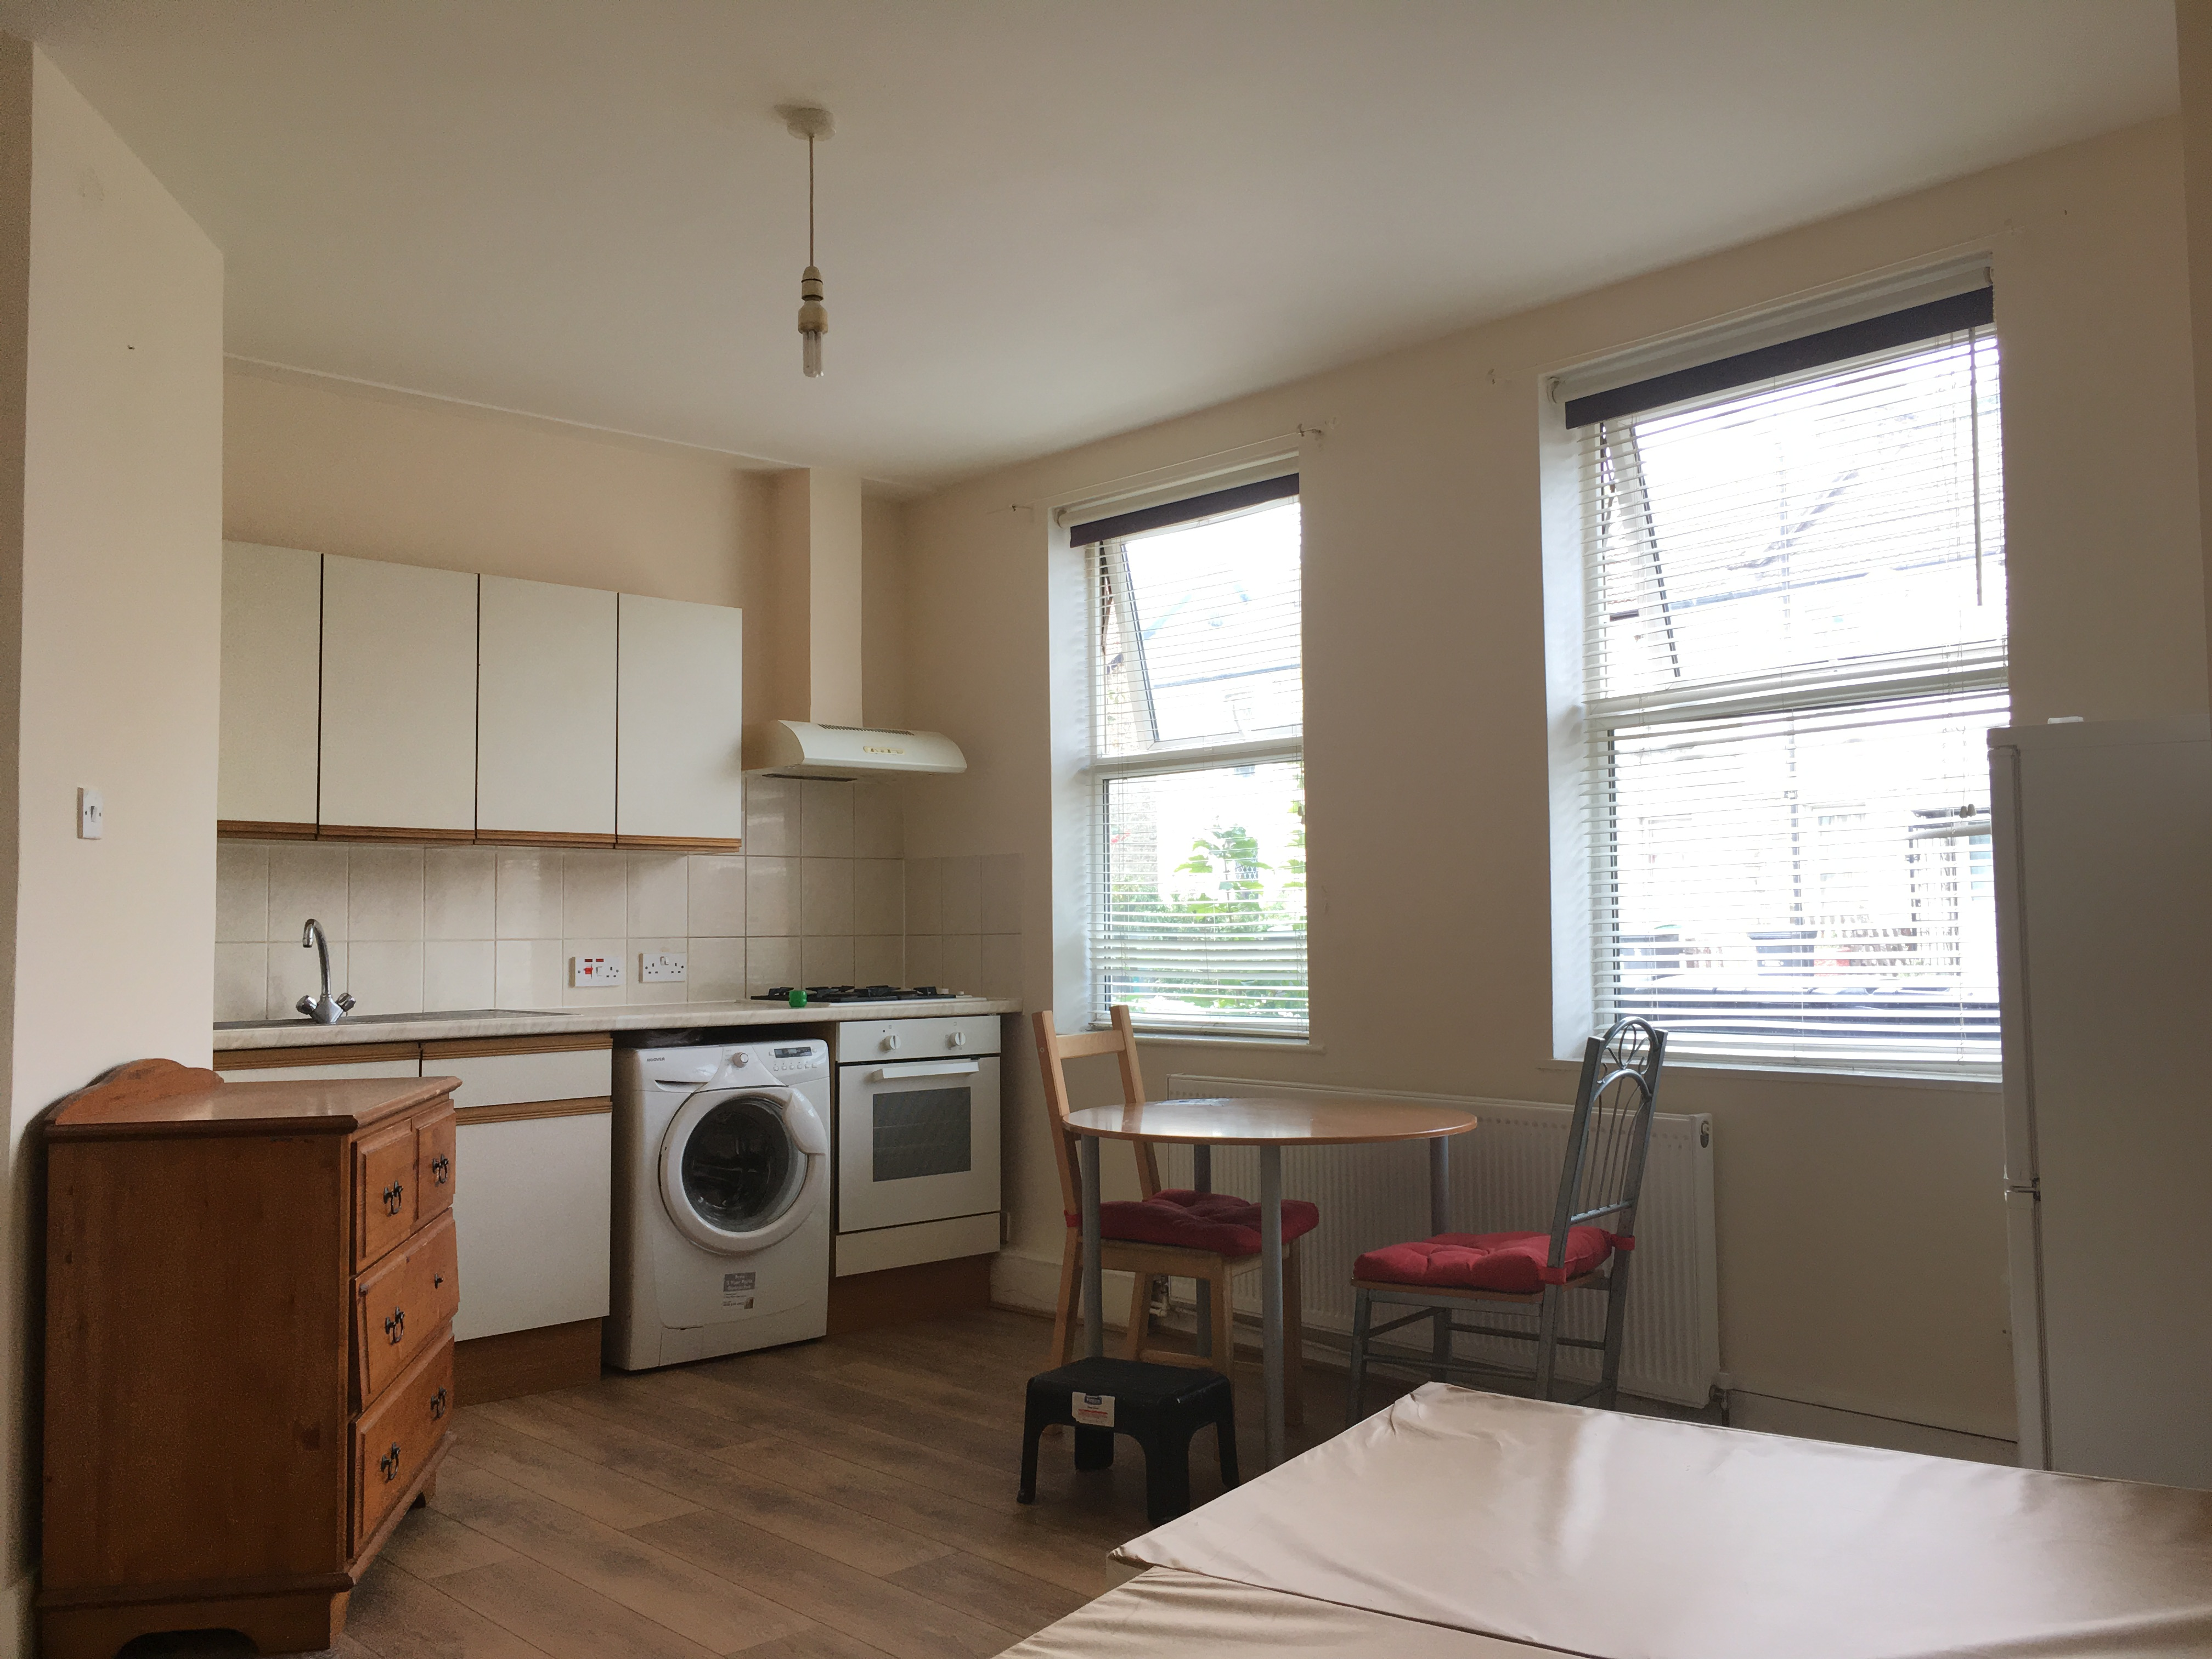 Lovely studio flat to let located near Seven Sister Station, London N15.